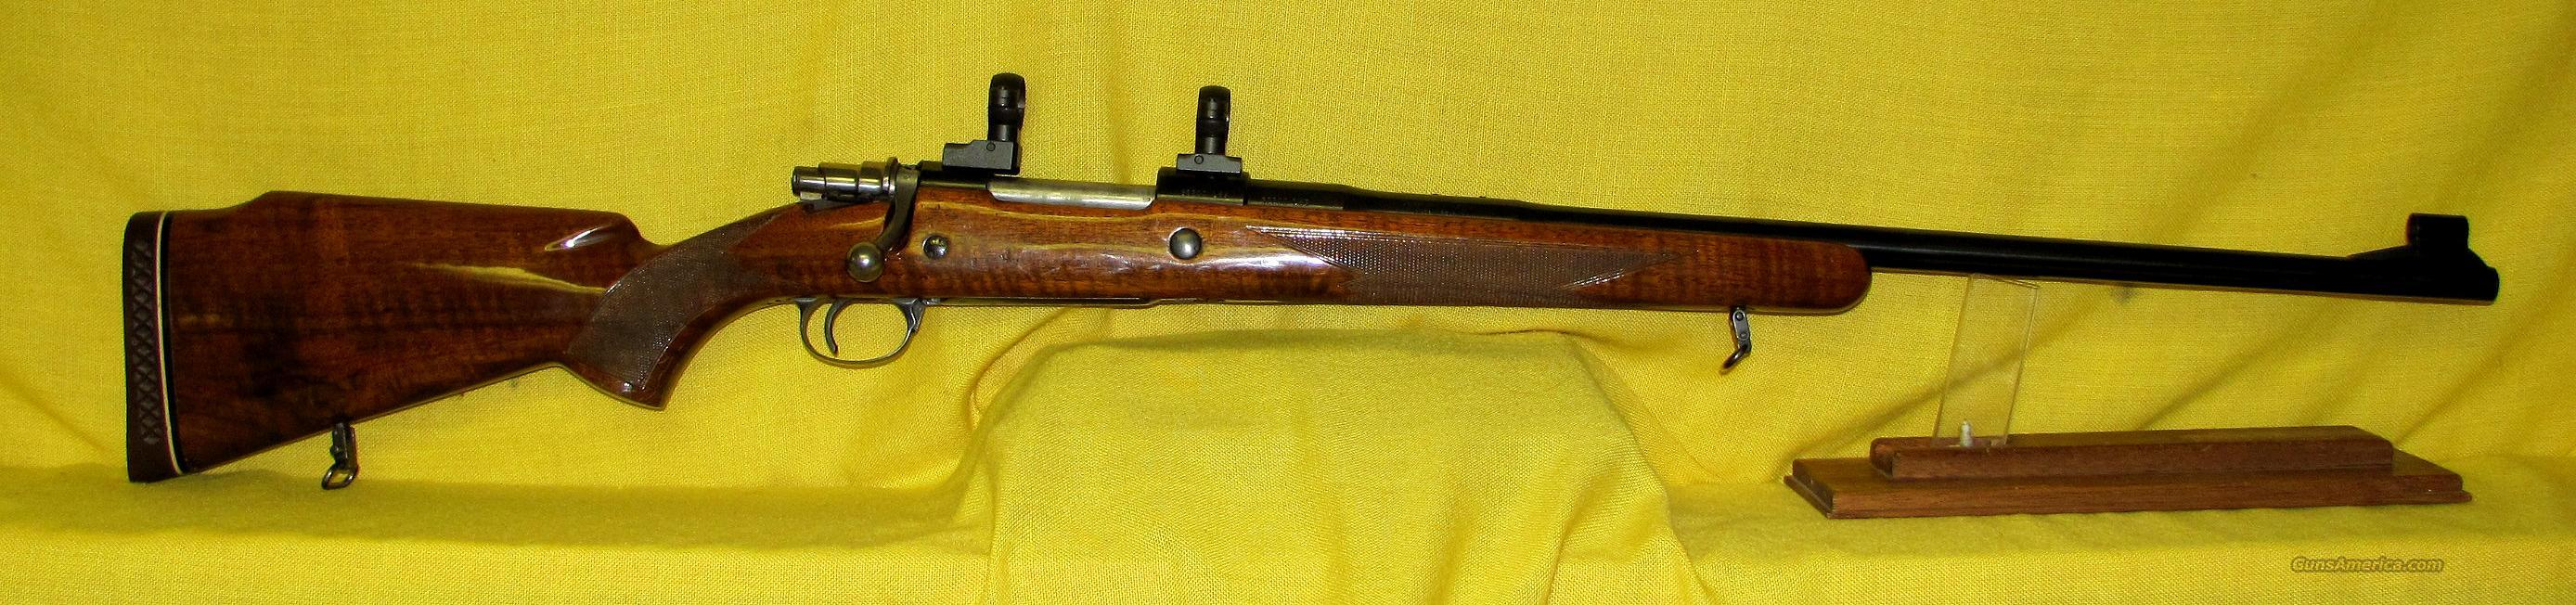 "BROWNING SAFARI HI POWER 300WIN 24""BBL  Guns > Rifles > Browning Rifles > Bolt Action > Hunting > Blue"